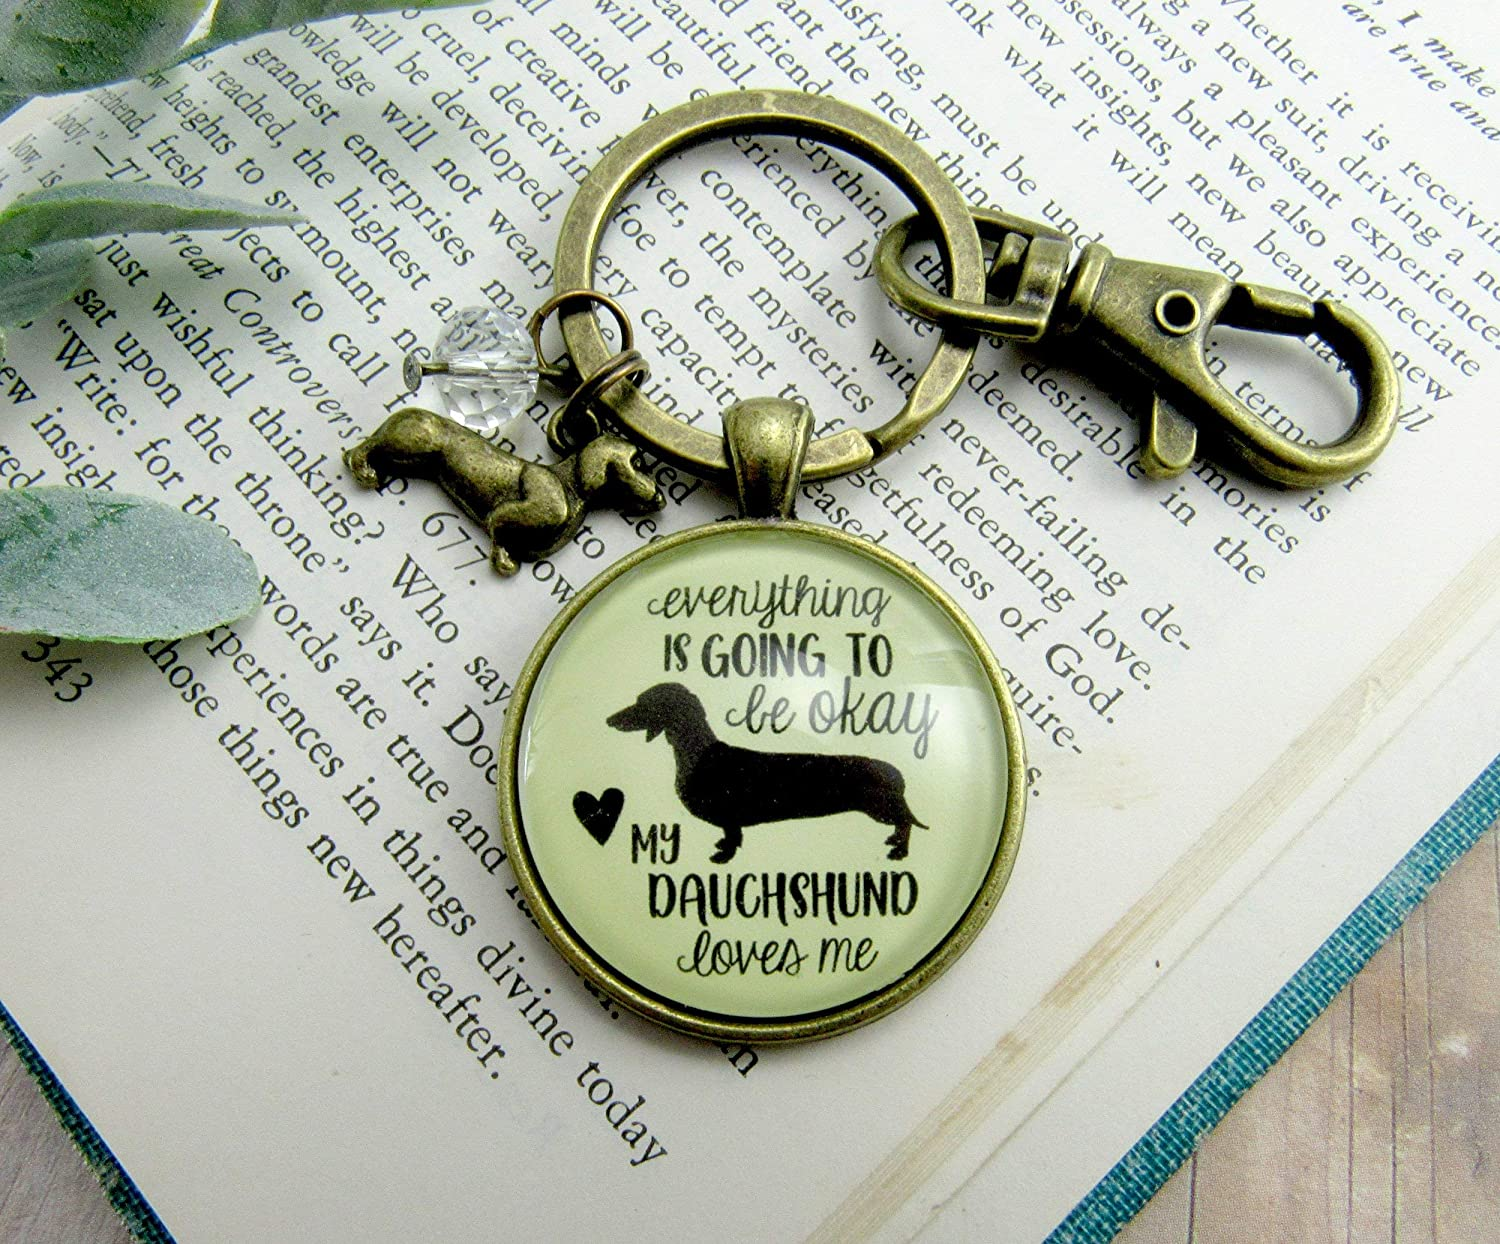 ... Dachshund Keychain Everything is Going to Be Okay My Dachshund Loves Me  Dog Mom Jewelry Womens ... 59070a1cb9